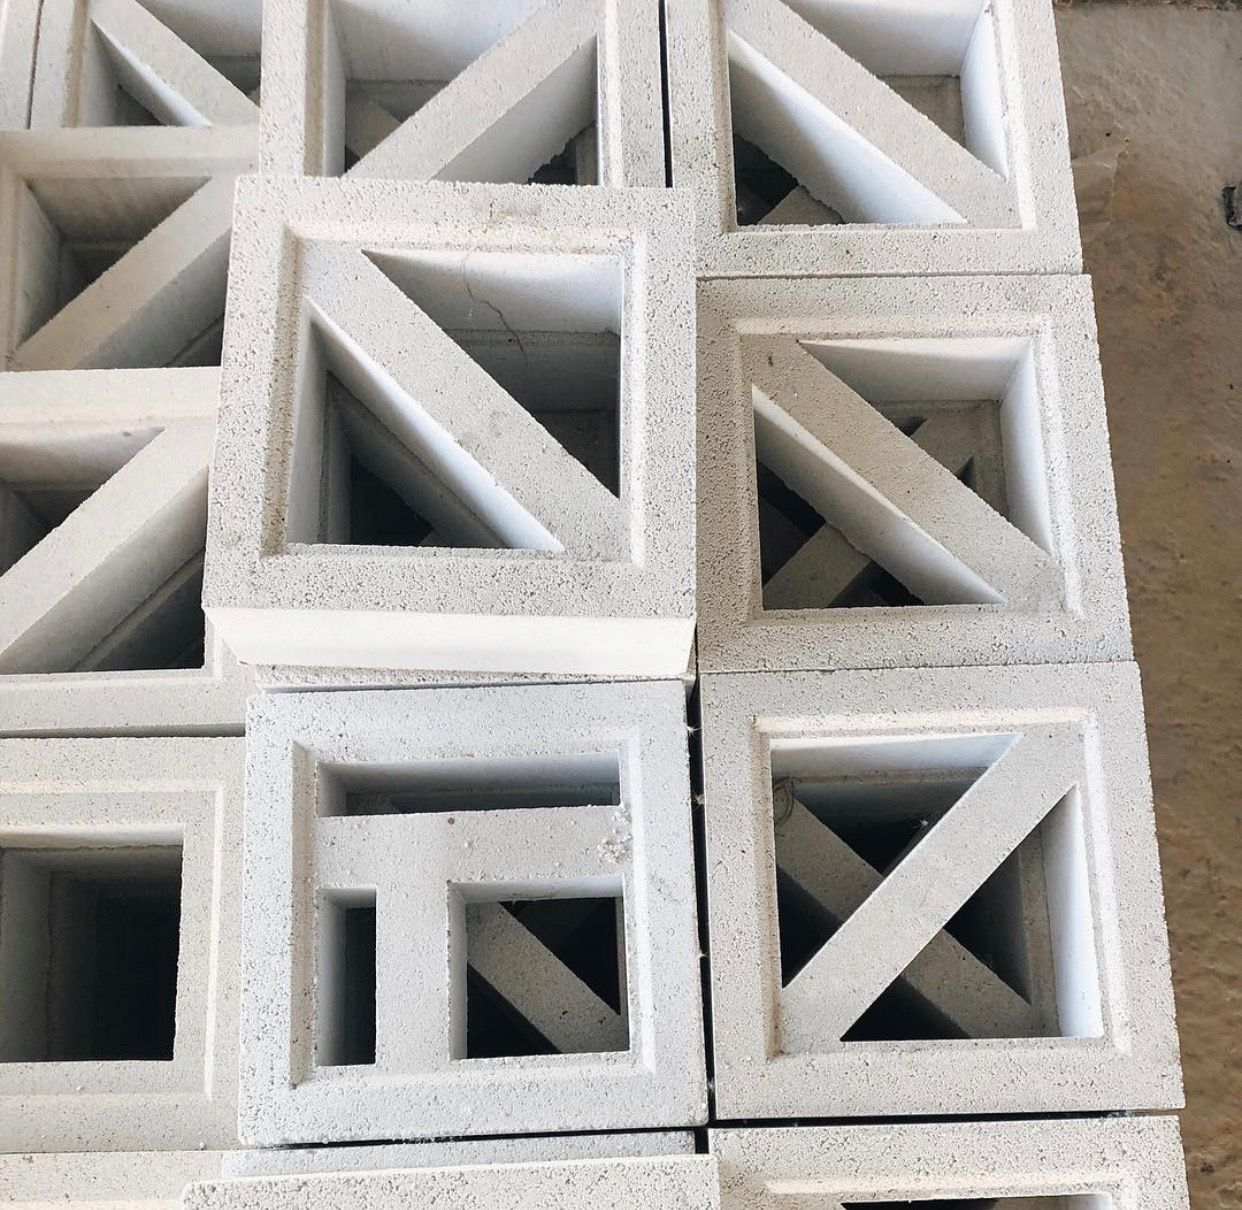 These Stacks Of Modern Breeze Blocks Are Giving Us Major Inspo Introducing The New Trestles Range High Breeze Blocks Breeze Block Wall Concrete Blocks